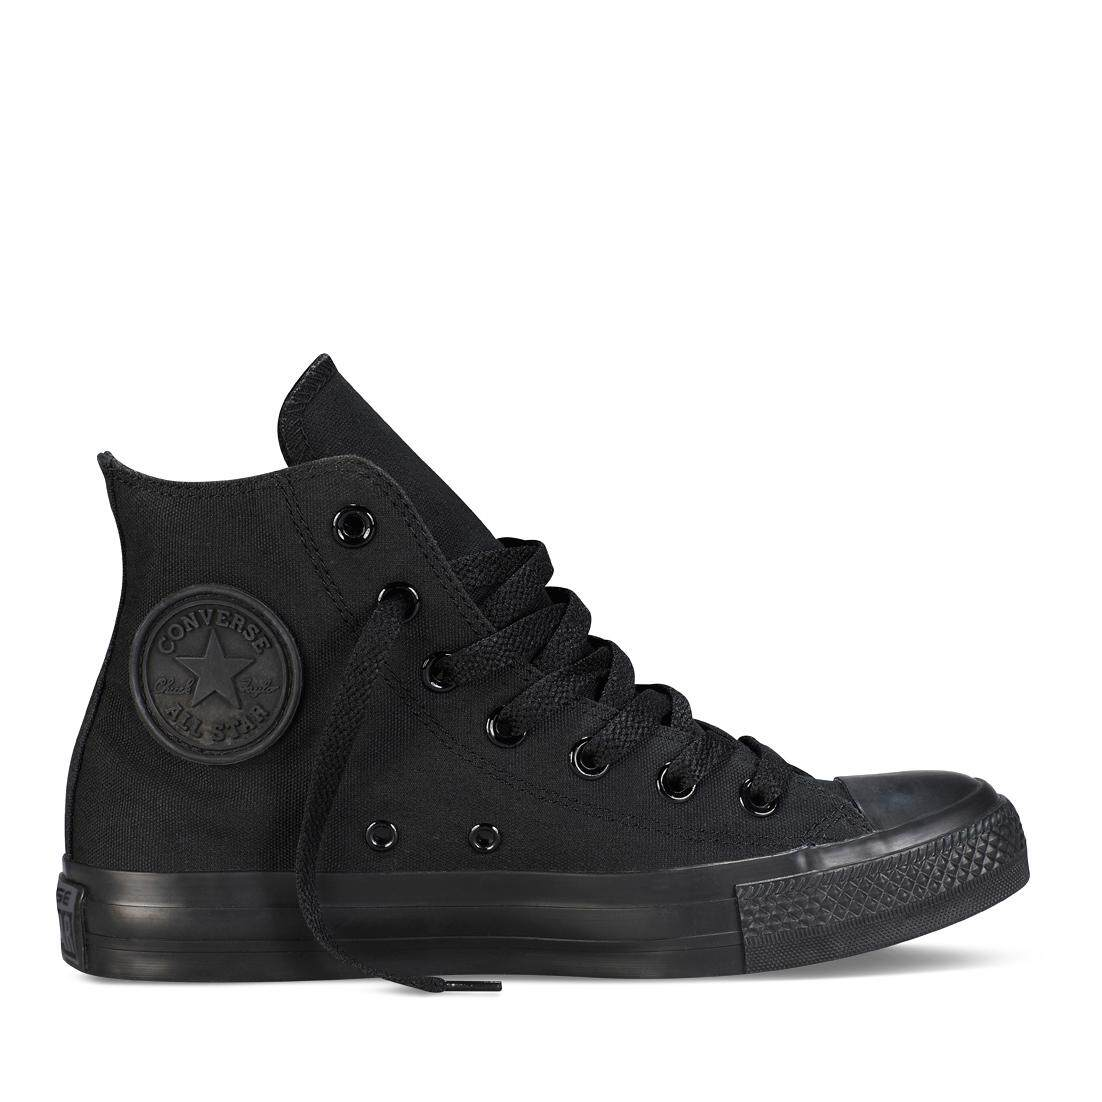 CONVERSE CHUCK TAYLOR ALL STAR - HI - BLACK MONOCHROME - M3310C